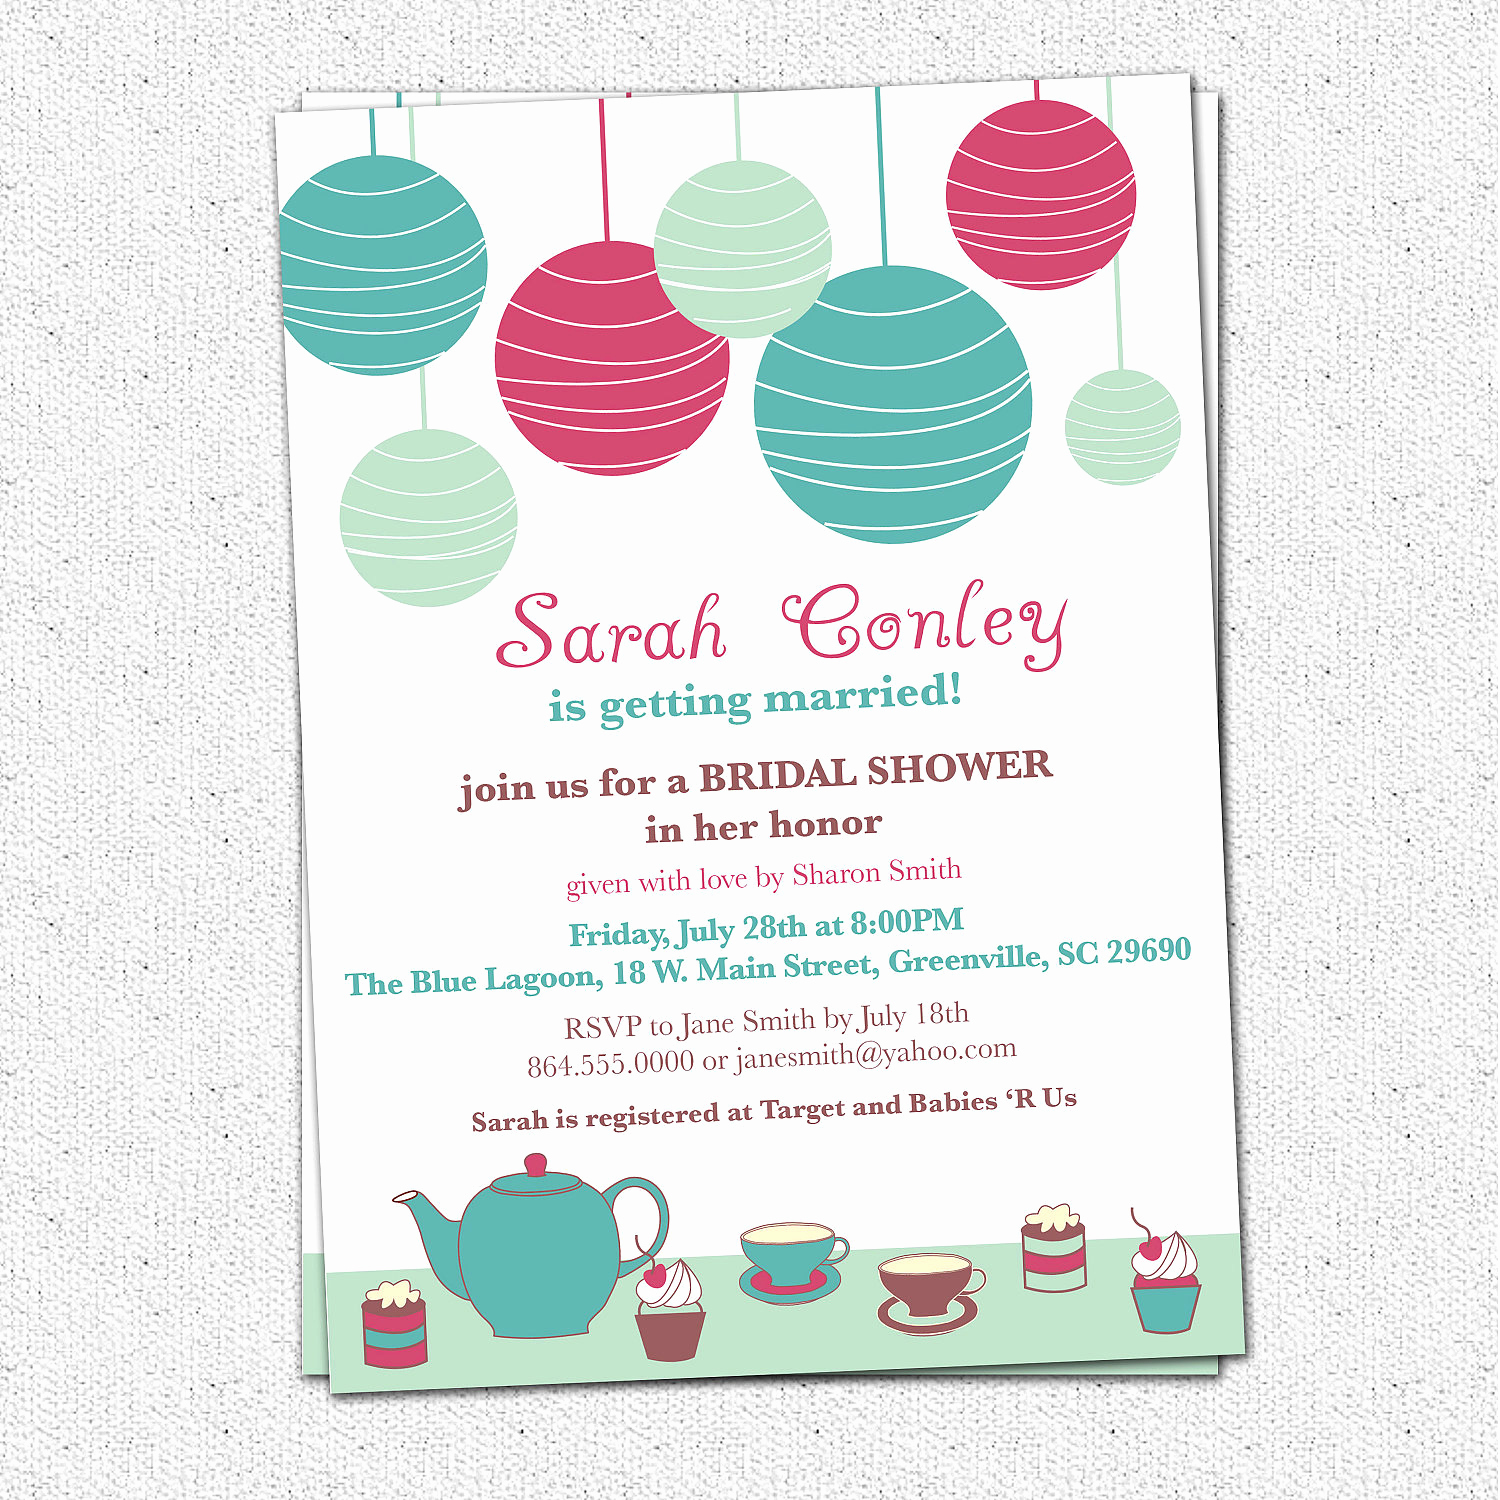 Wedding Shower Invitation Templates Beautiful Bridal Shower Invitation Printable Tea Brunch Lanterns